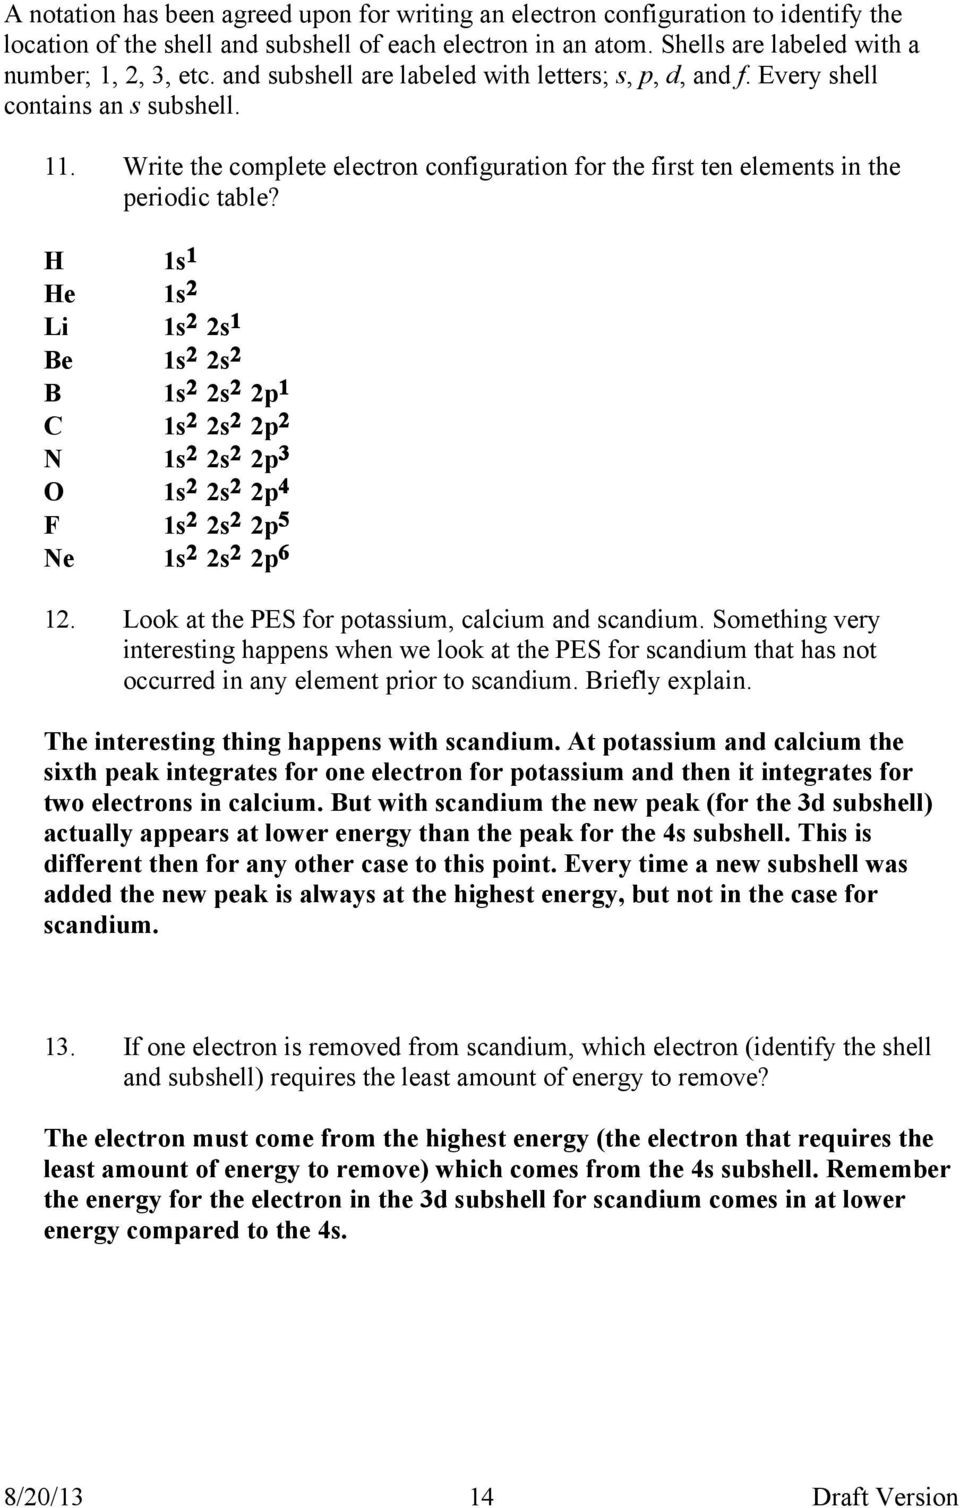 Photoelectron Spectroscopy Worksheet Answers Question Do All Electrons In the Same Level Have the Same